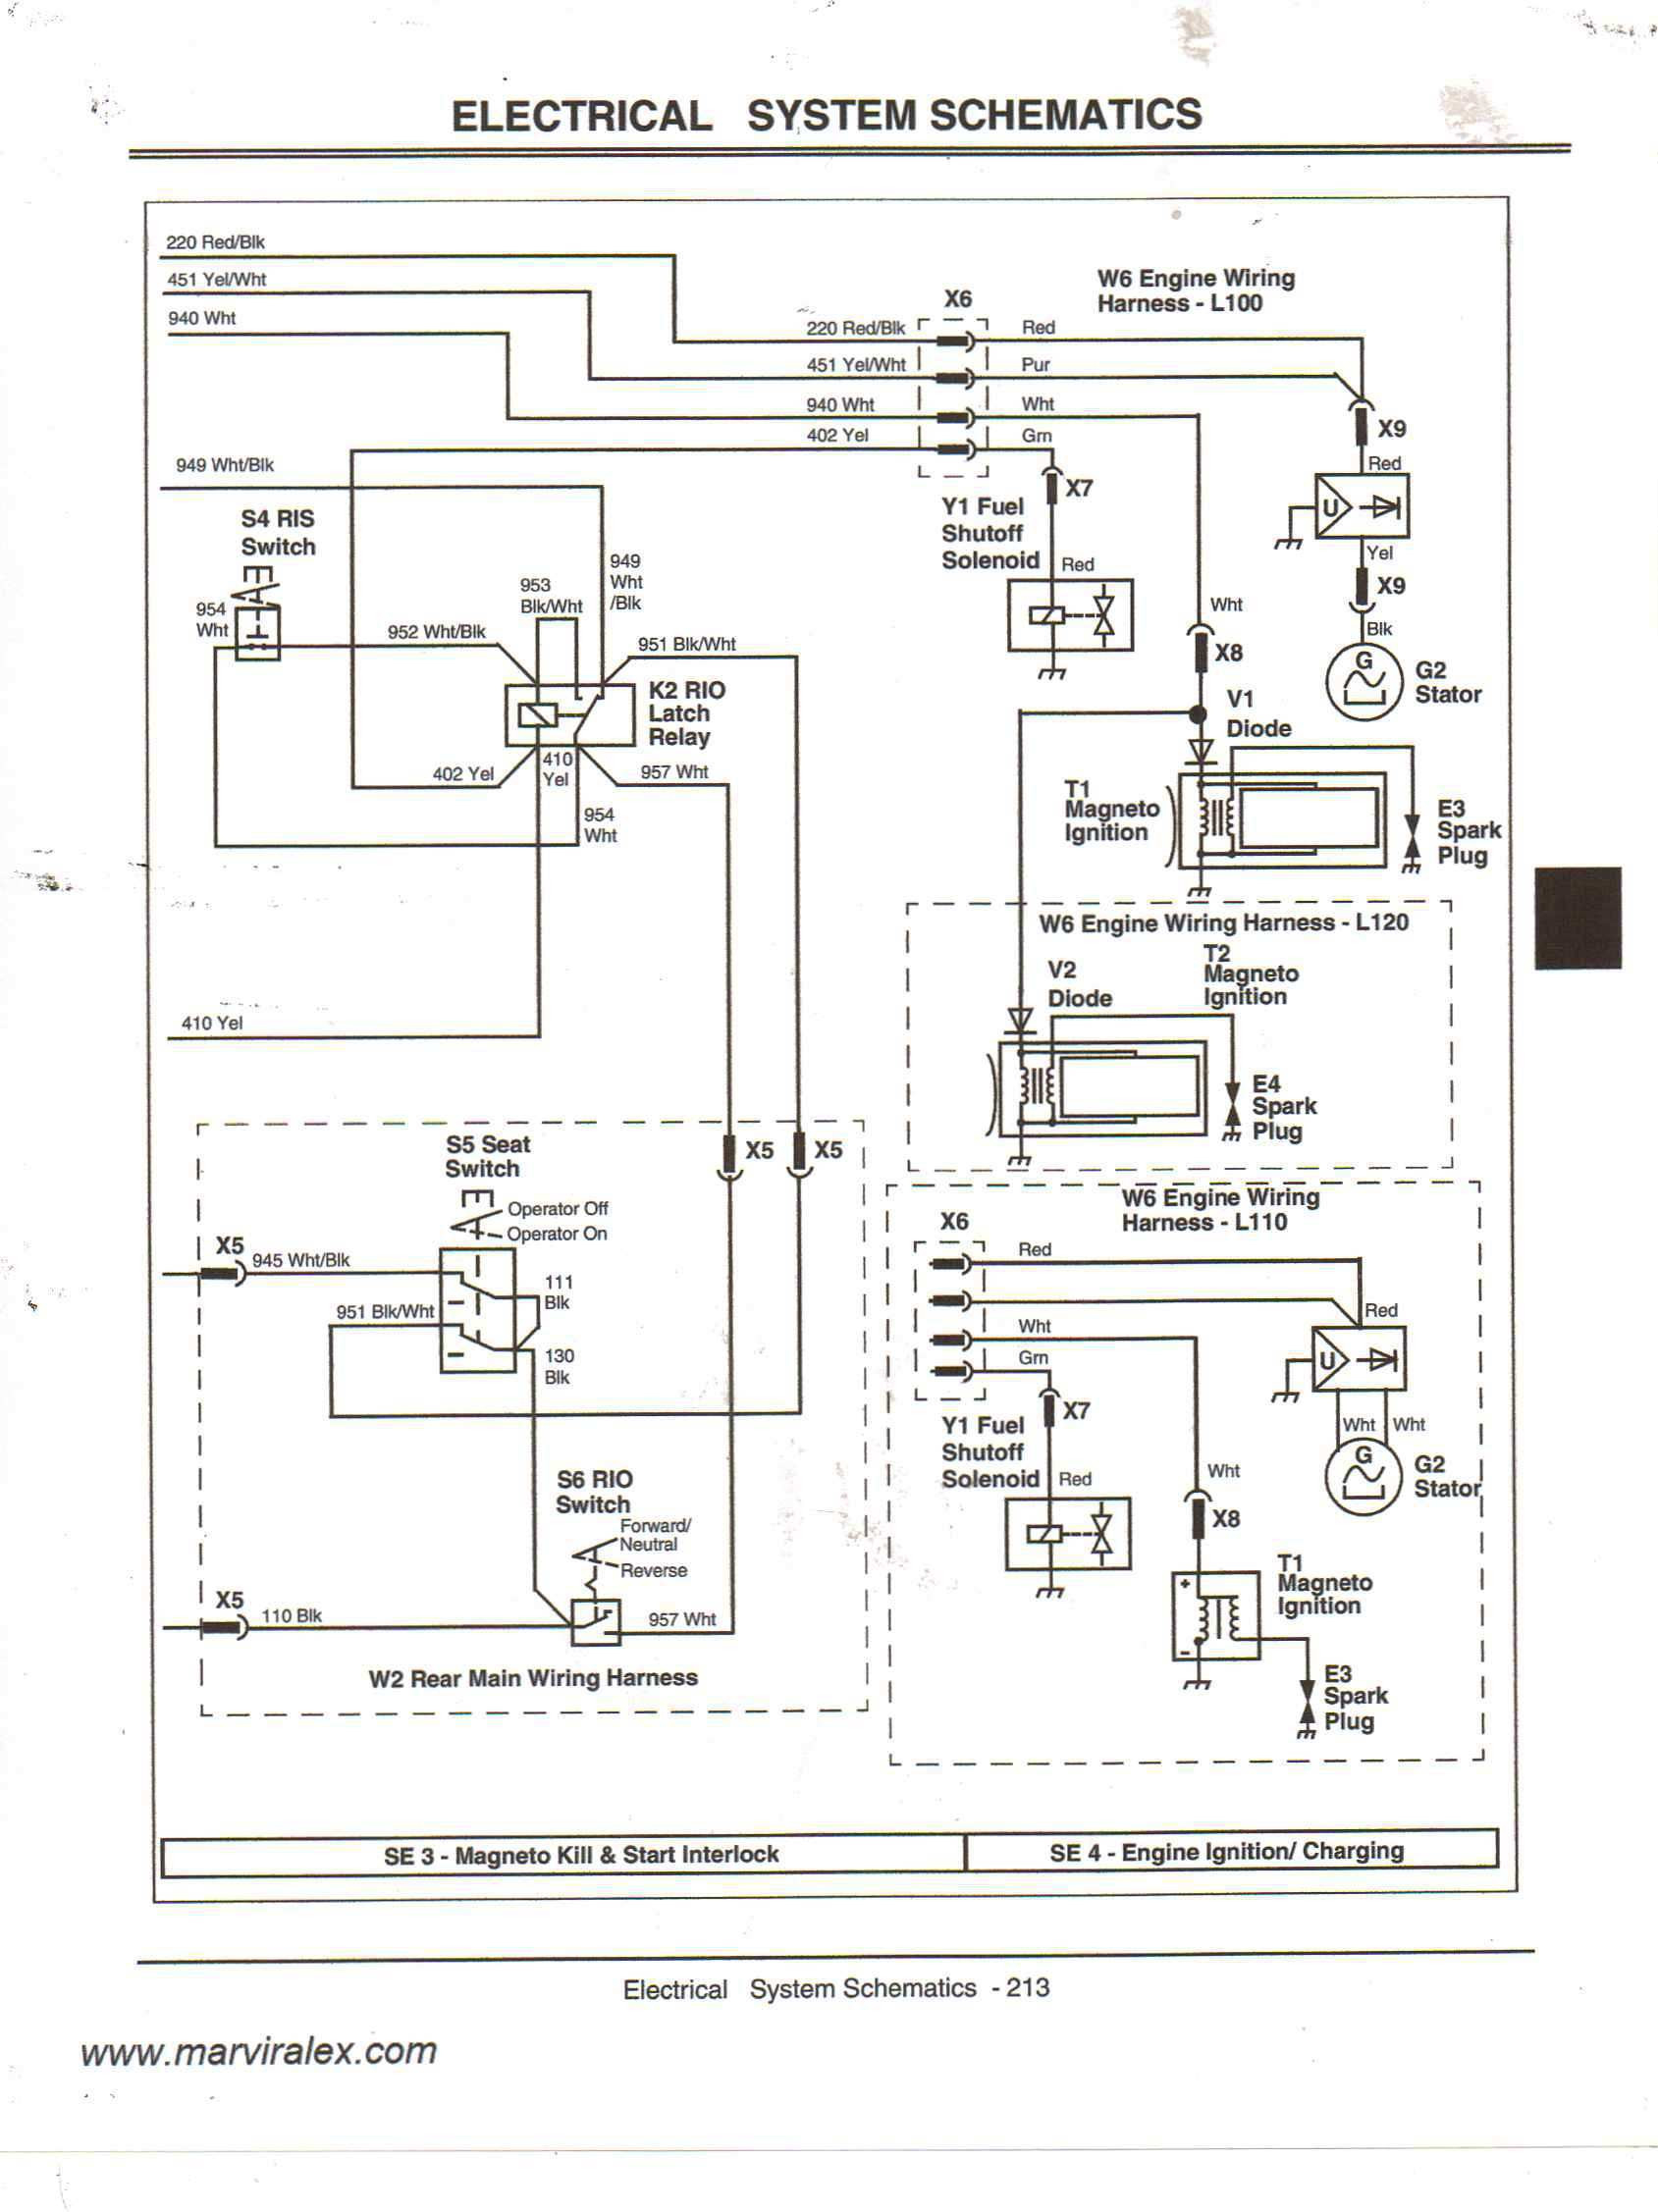 Pioneer Parking Brake Bypass Wiring Diagram Valid Pioneer Parking - Pioneer Parking Brake Bypass Wiring Diagram